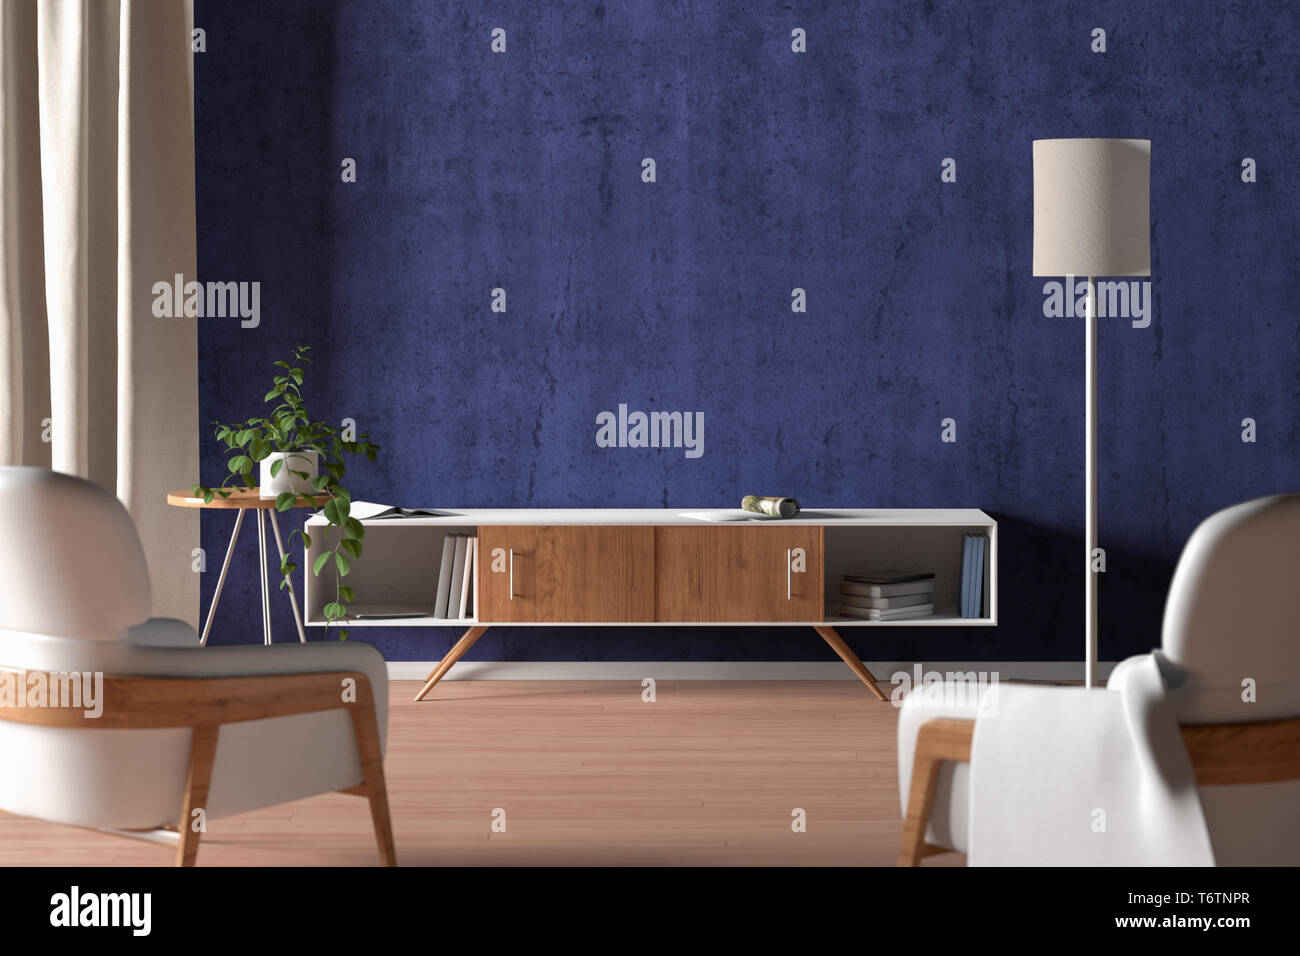 Tv Cabinet In Modern Living Room With Blank Blue Wall Background 3d Illustration Stock Photo Alamy